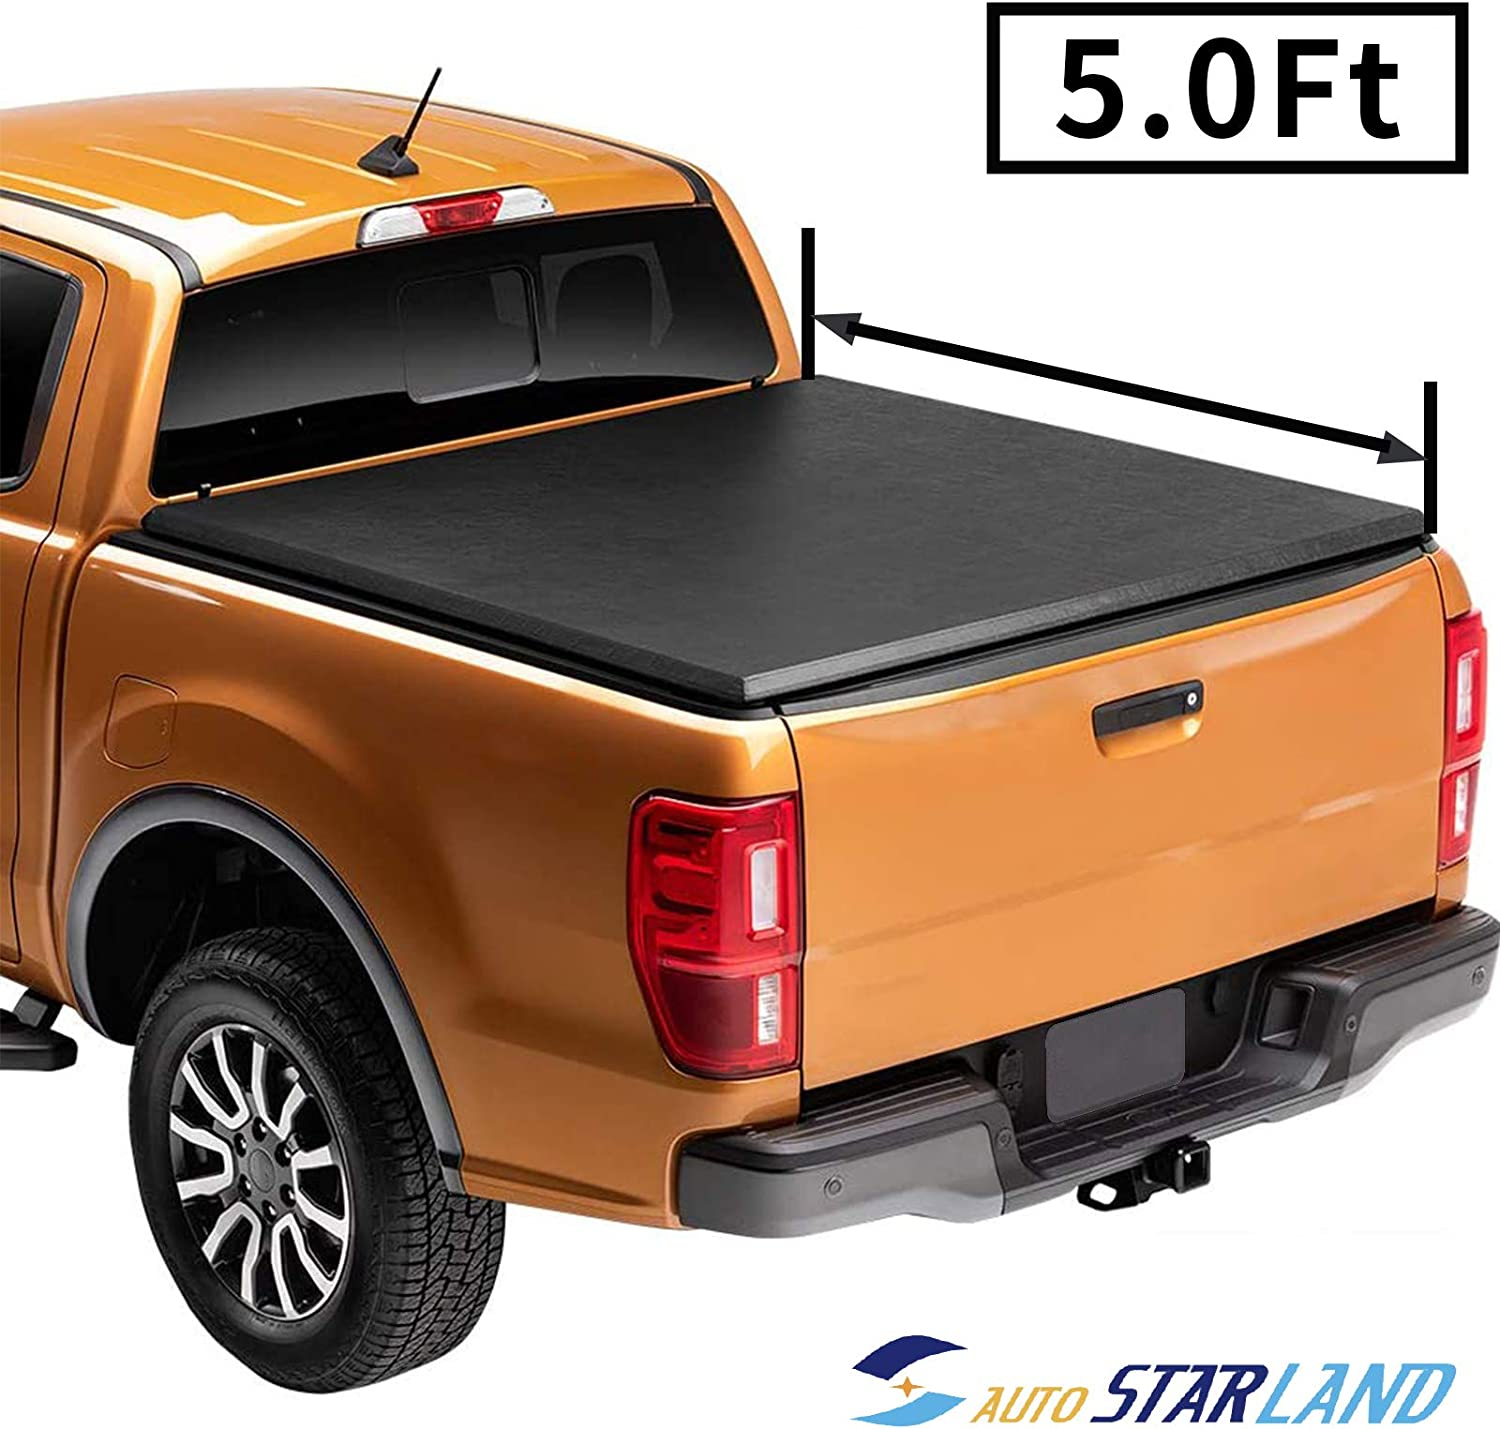 PICKUPZONE Soft 67% OFF of fixed price Columbus Mall Tri-Fold 5ft Adjustable Cover Top Tonneau Protec